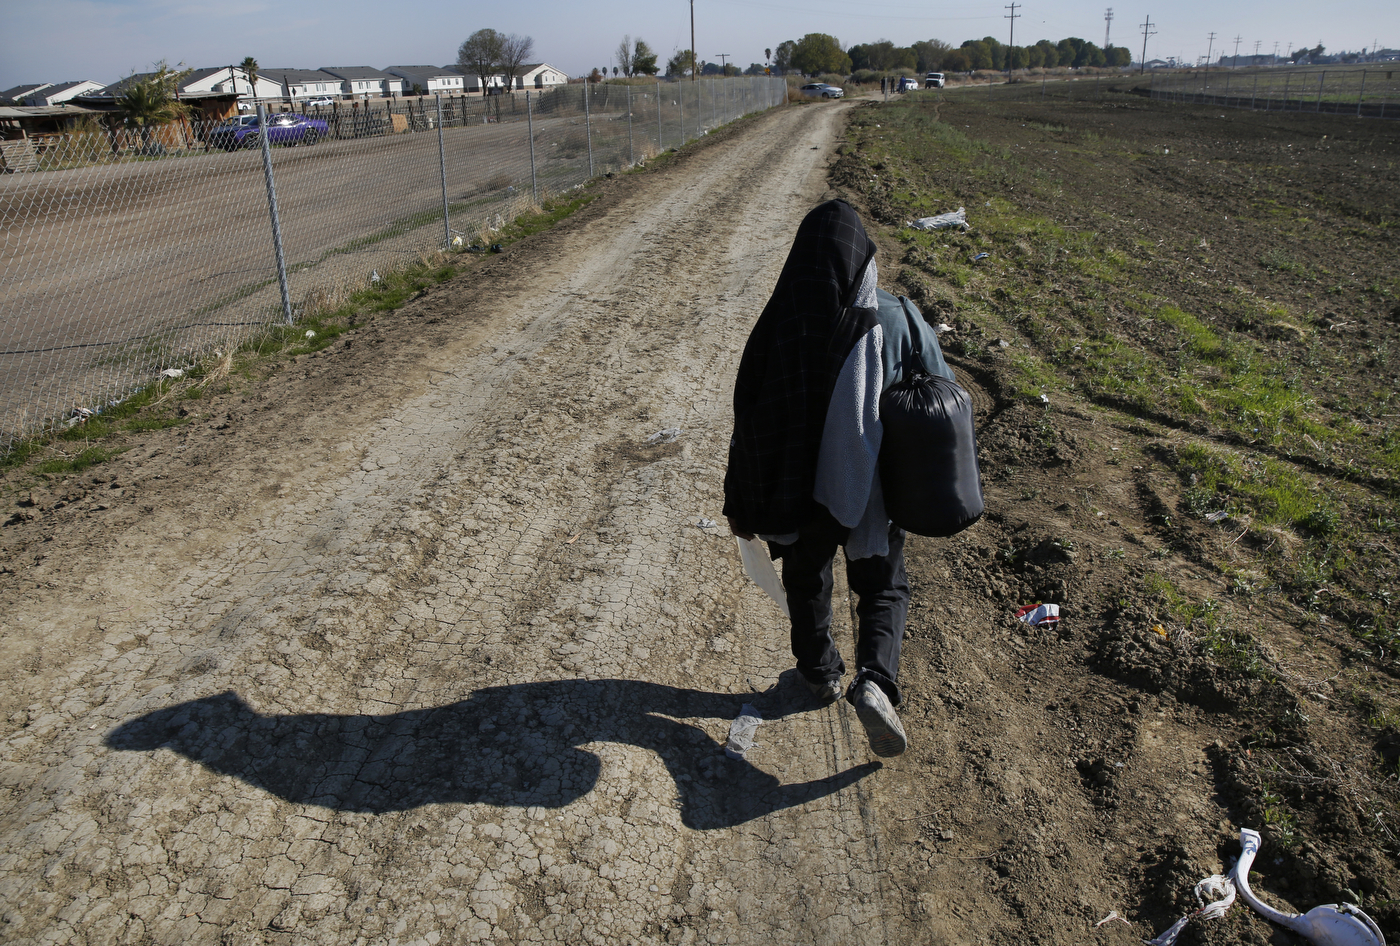 Mena walks down a road away from his home and the shantytown with a few belongings thirty minutes before police are expected to show up to evict him and the other residents. Mena ended up staying with his nephew in Mendota, trying to get work trimming trees in nearby pistachio orchards.